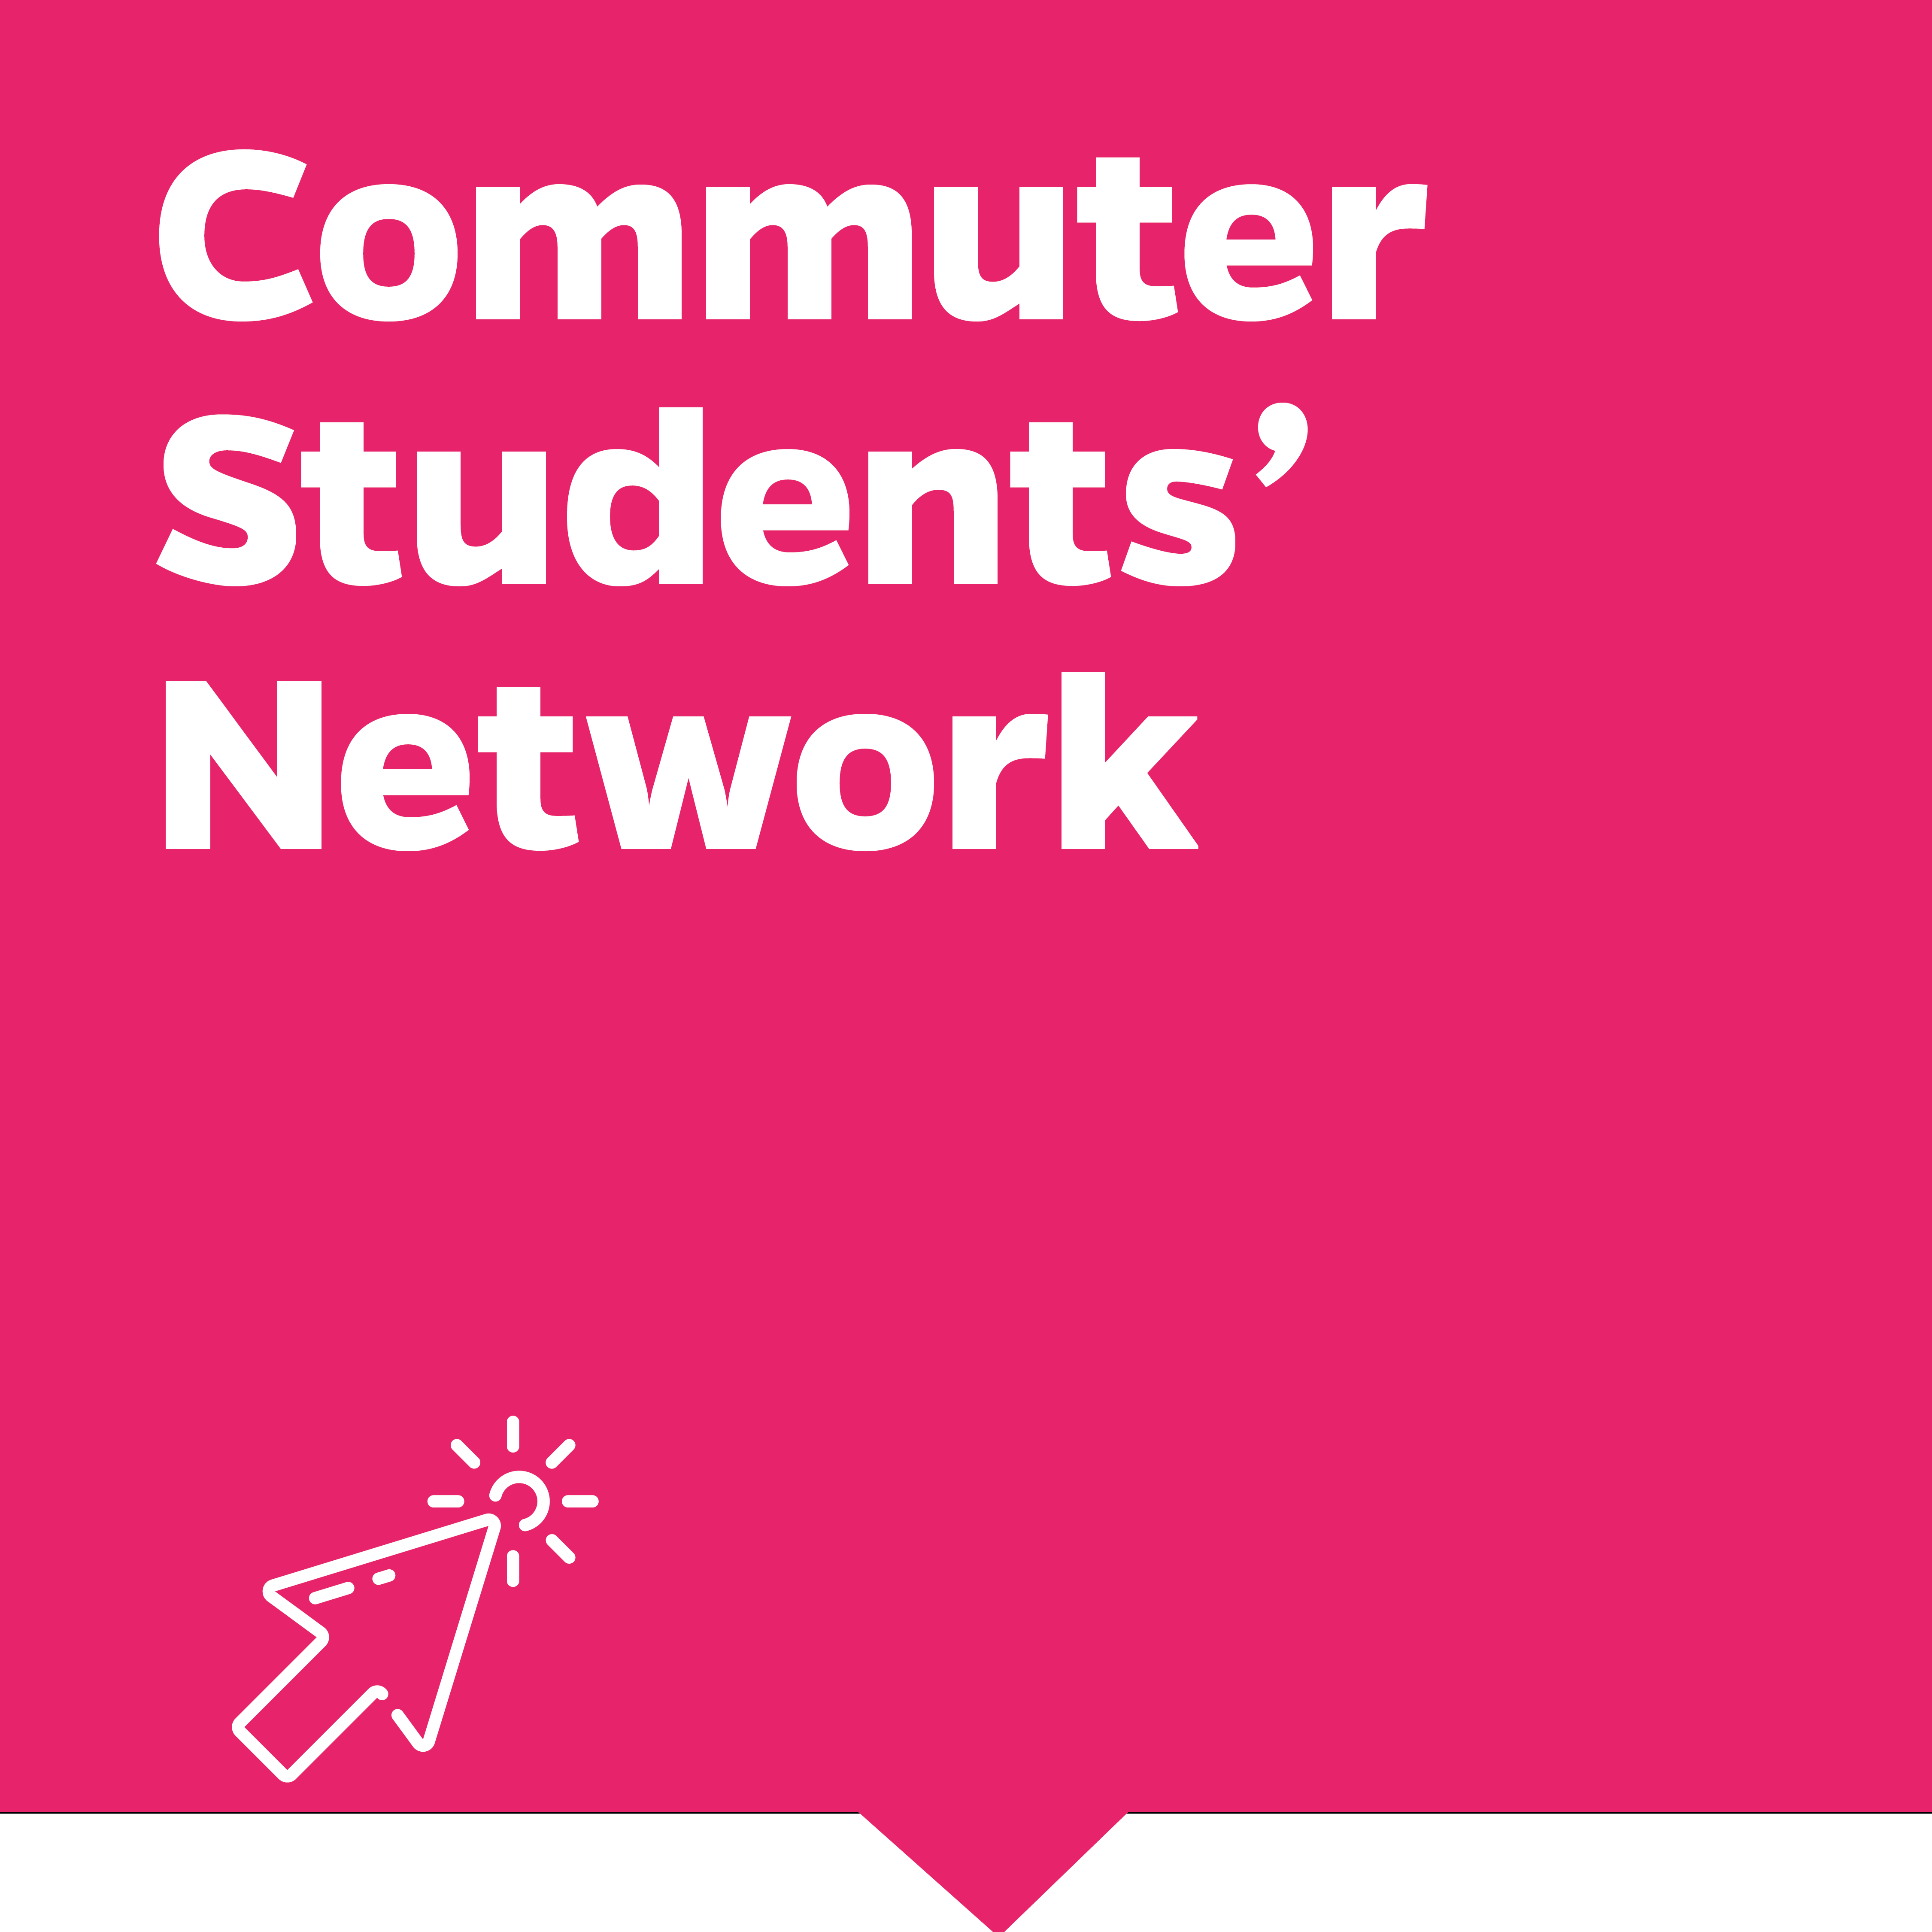 Commuter Students' Network